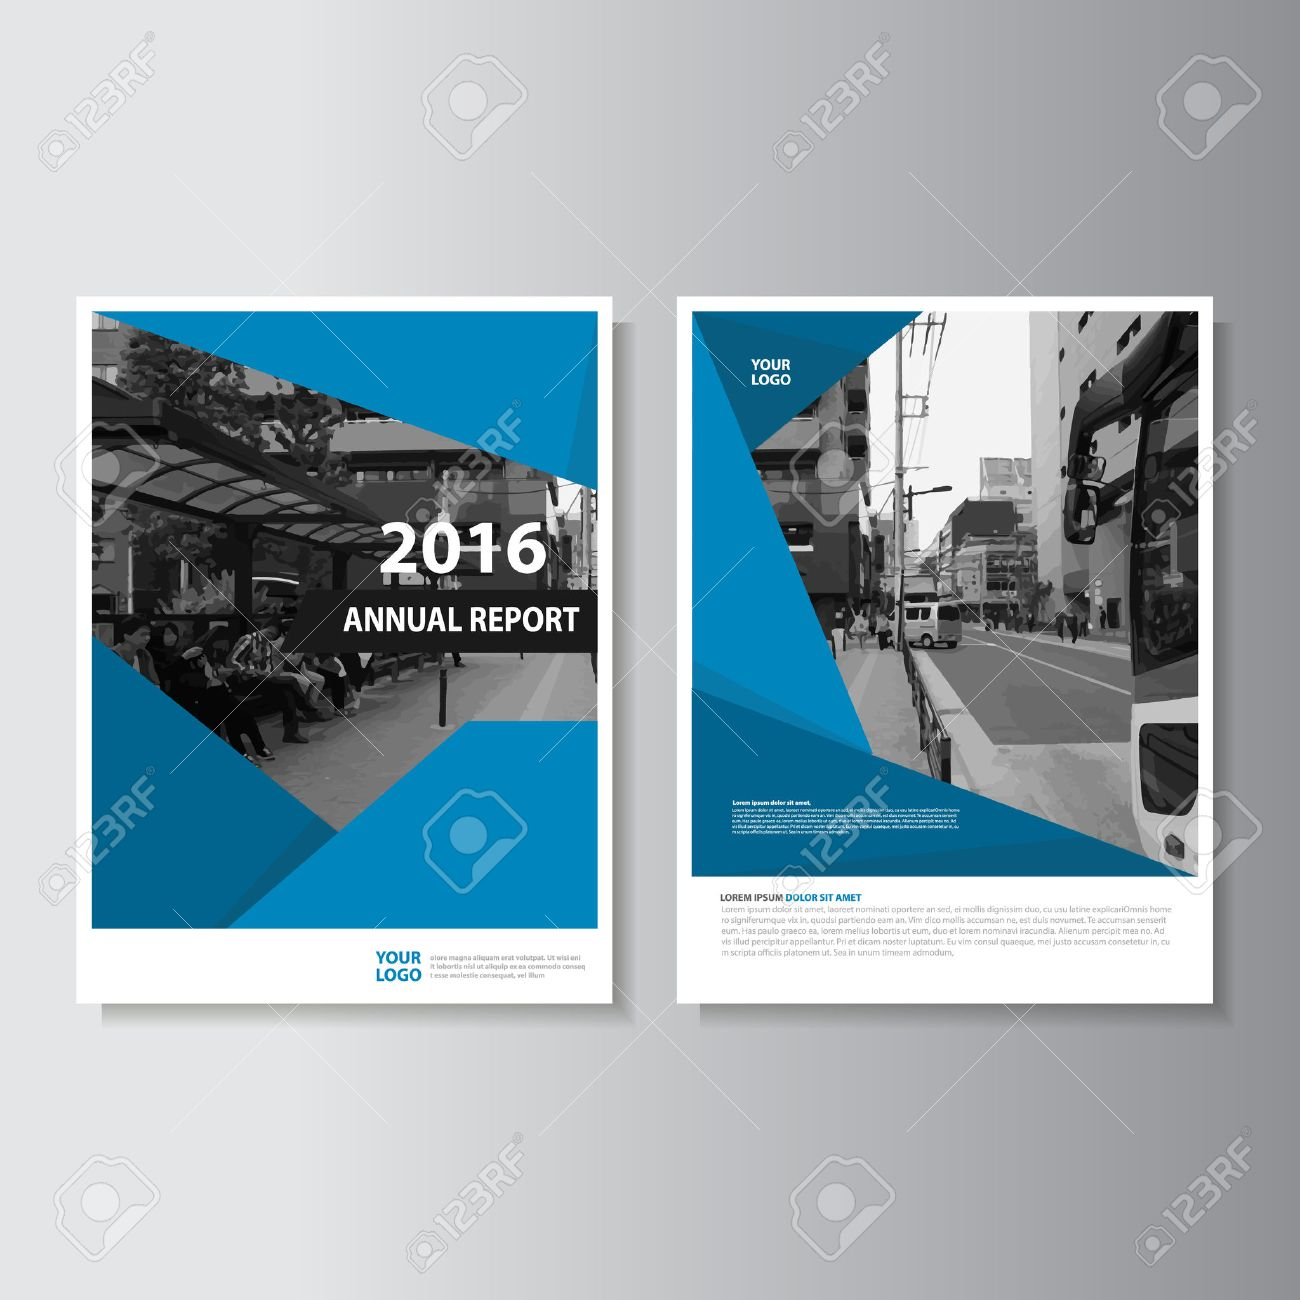 Vector Leaflet Brochure Flyer template A4 size design, annual report book cover layout design, Abstract blue presentation templates - 54348695